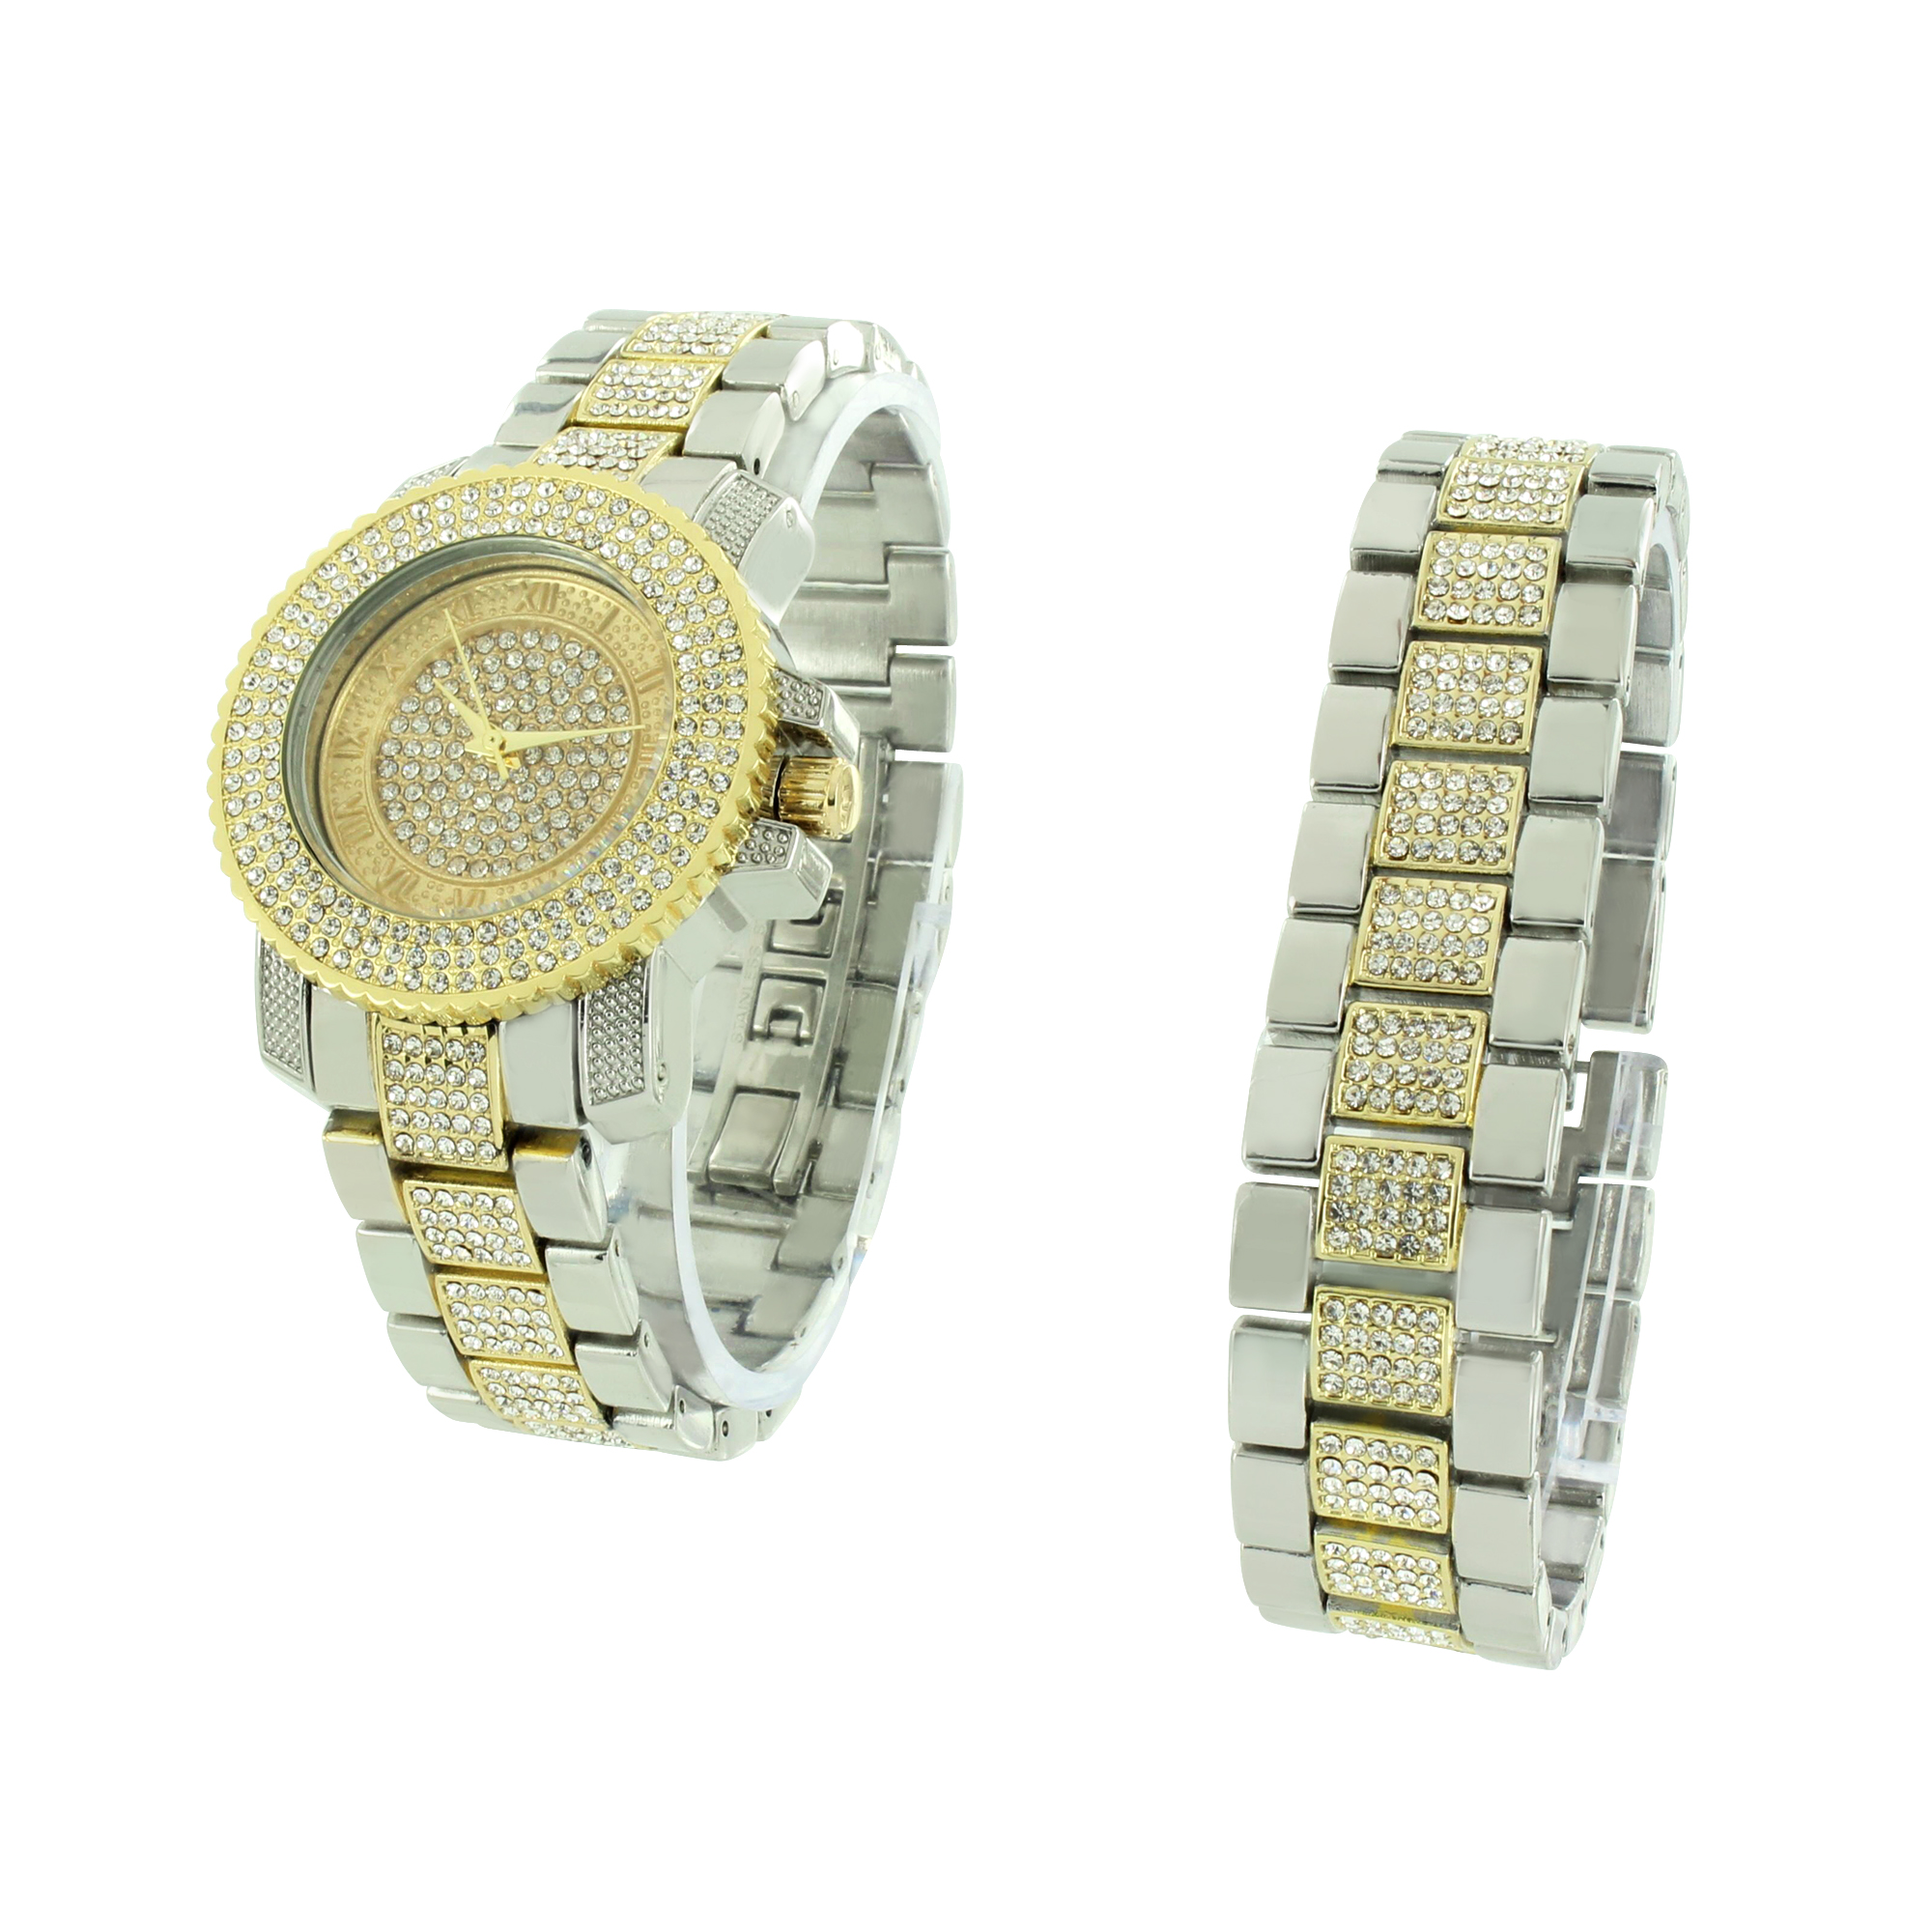 Iced Out Unisex Watch & Bracelet Set Simulated Diamonds Stainless Steel Back Quartz Movement